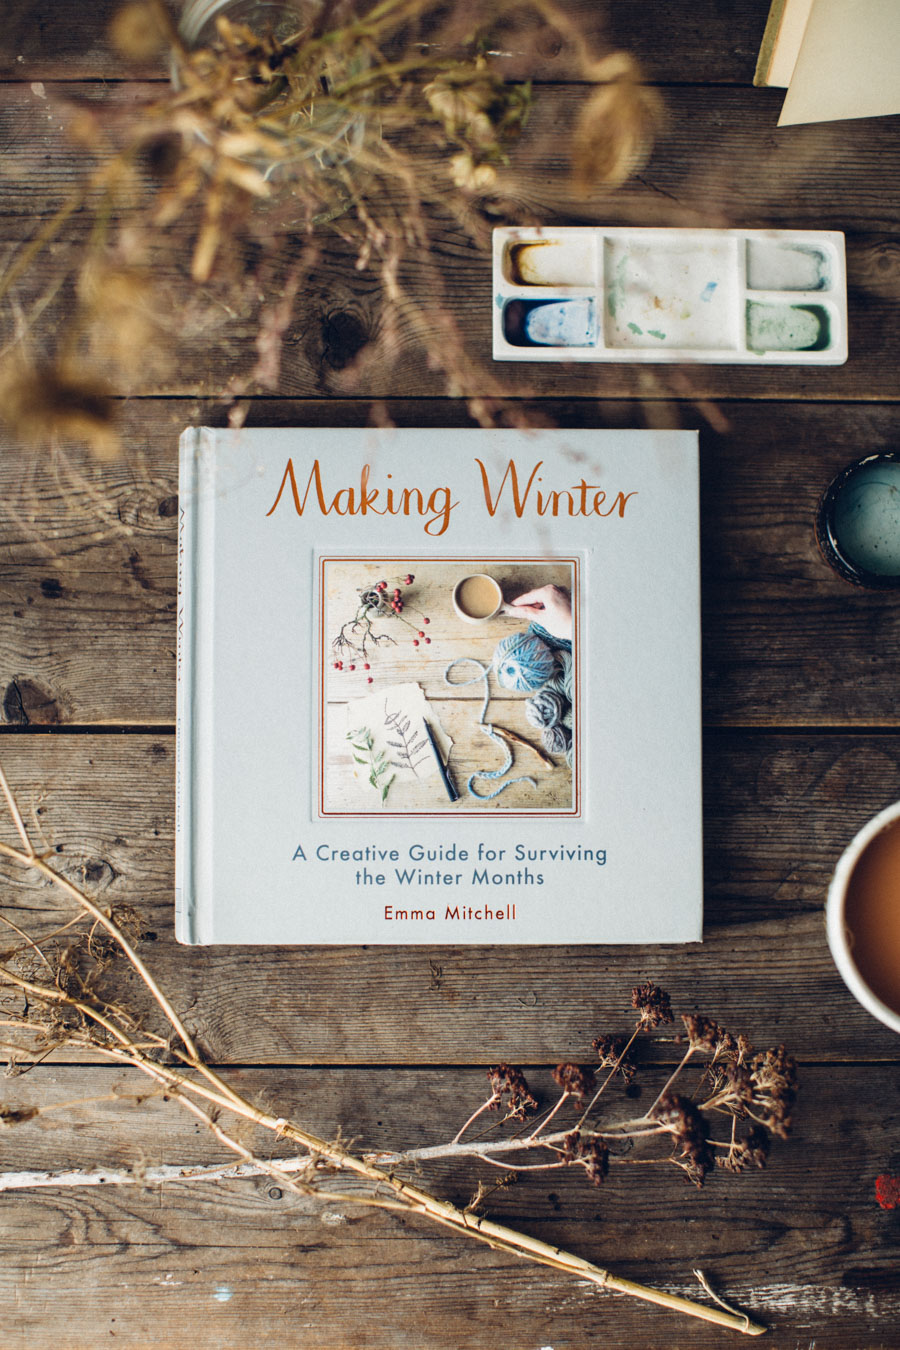 Making Winter by Emma Mitchell